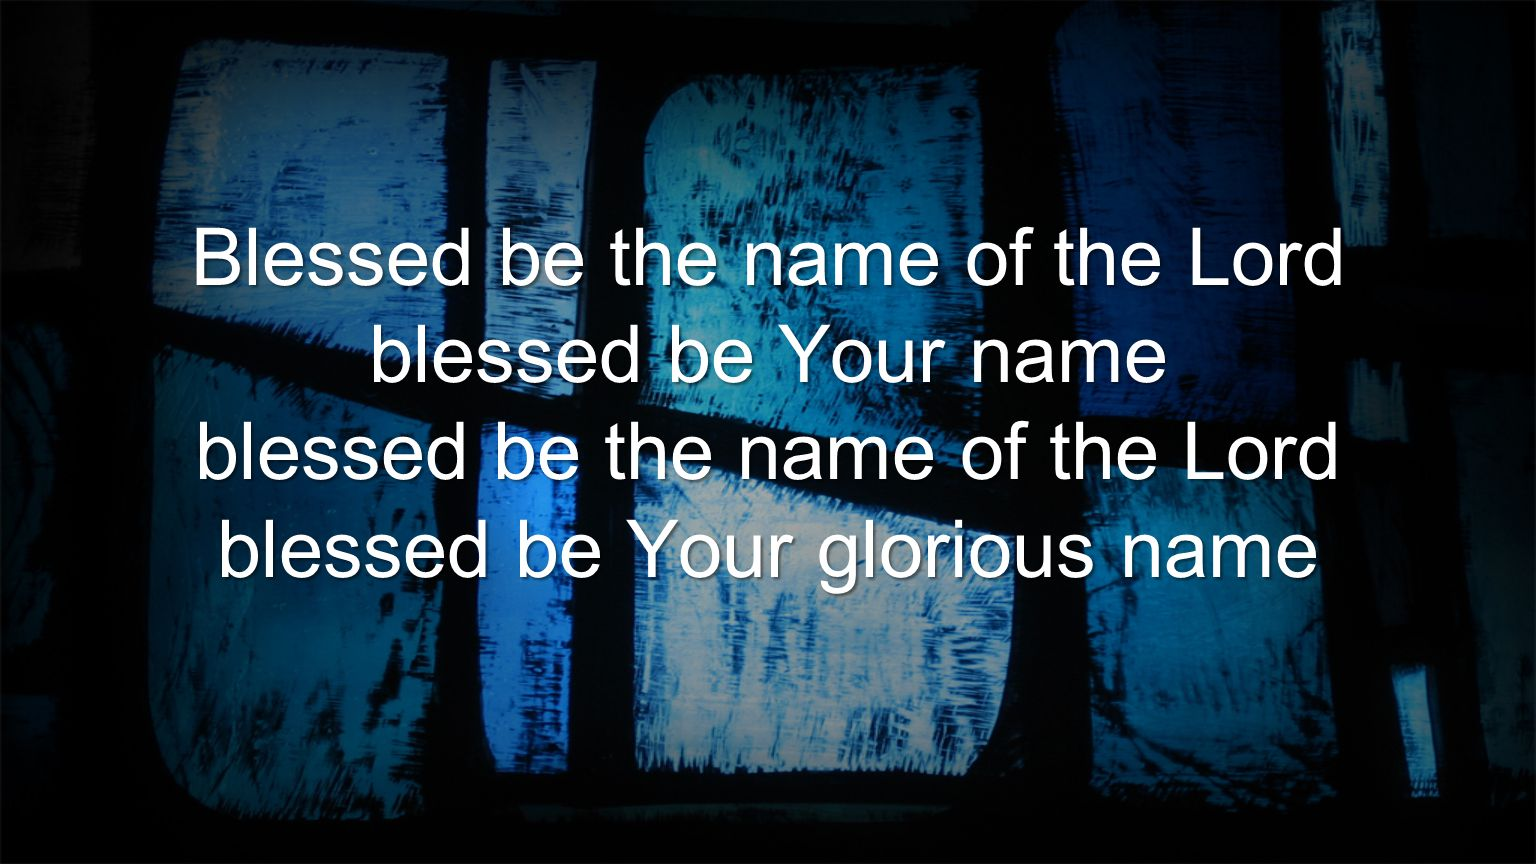 Blessed be the name of the Lord blessed be Your name